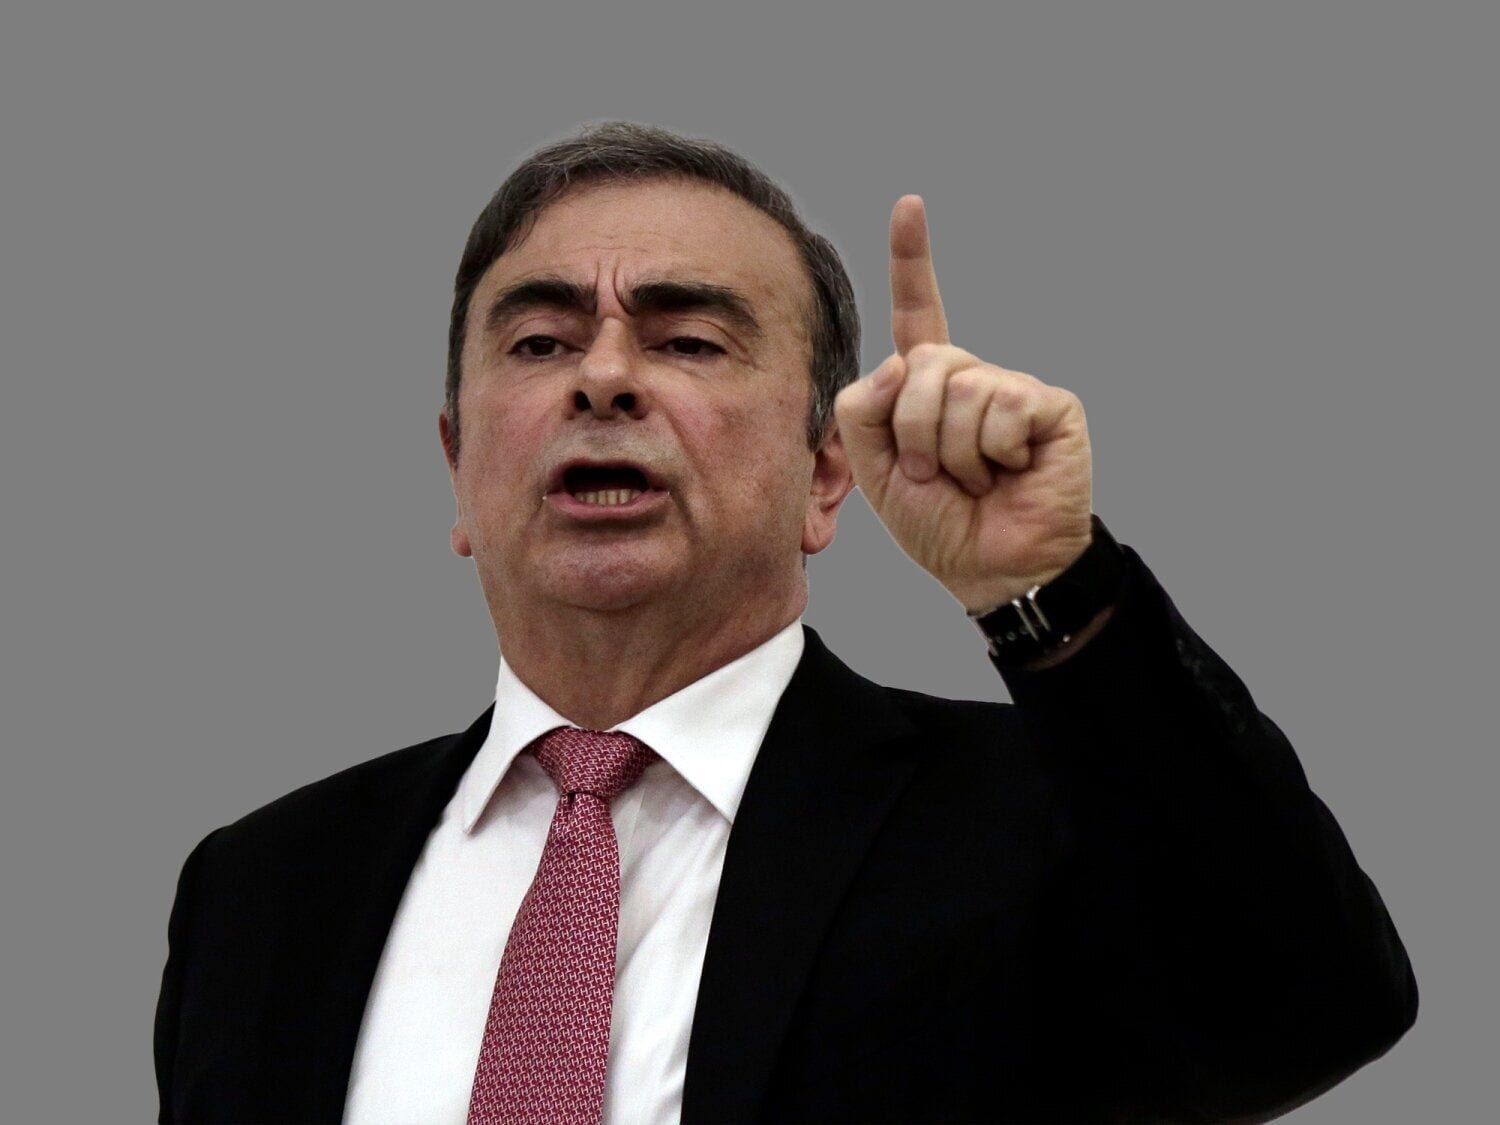 Carlos Ghosn headshot, former Nissan Motor Co. chairman, Beirut, Lebanon, graphic element on